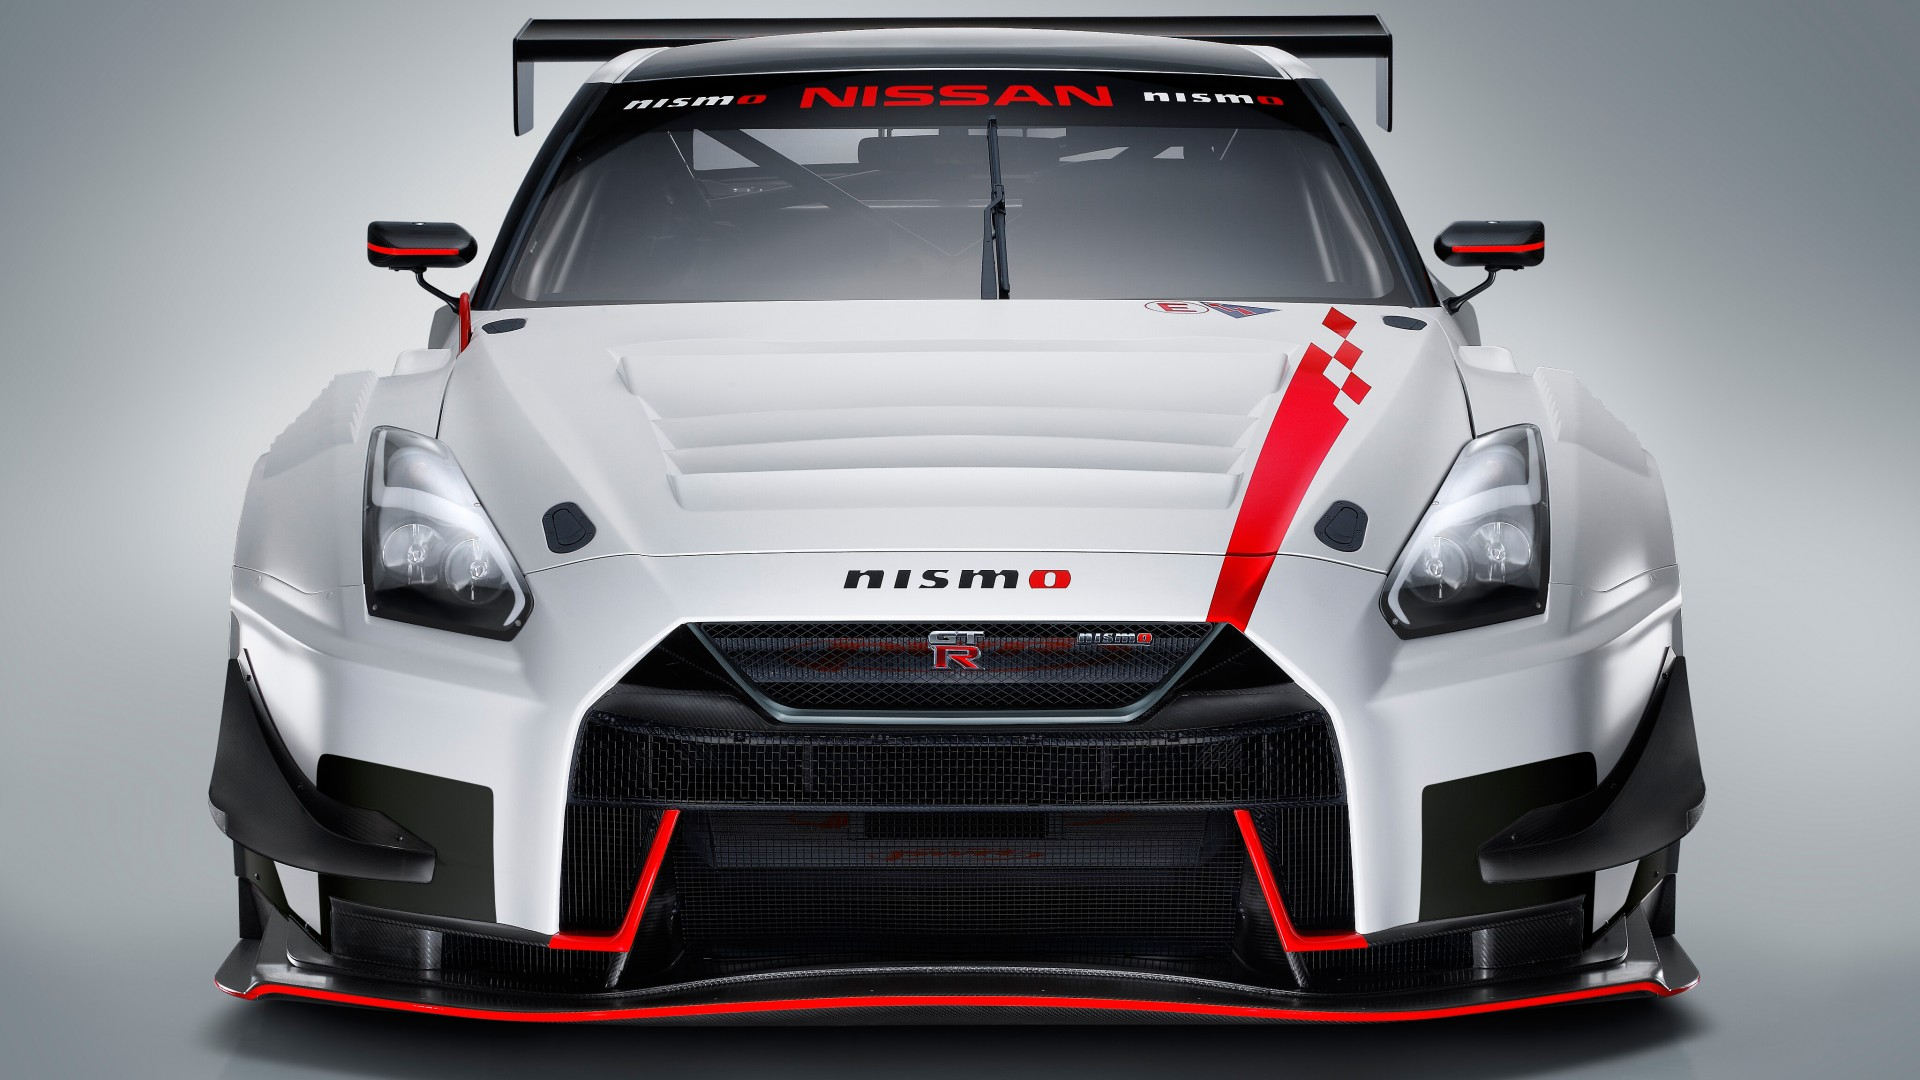 Nismo Nissan GT-R GT3 2018 4K 3 Wallpaper | HD Car ...